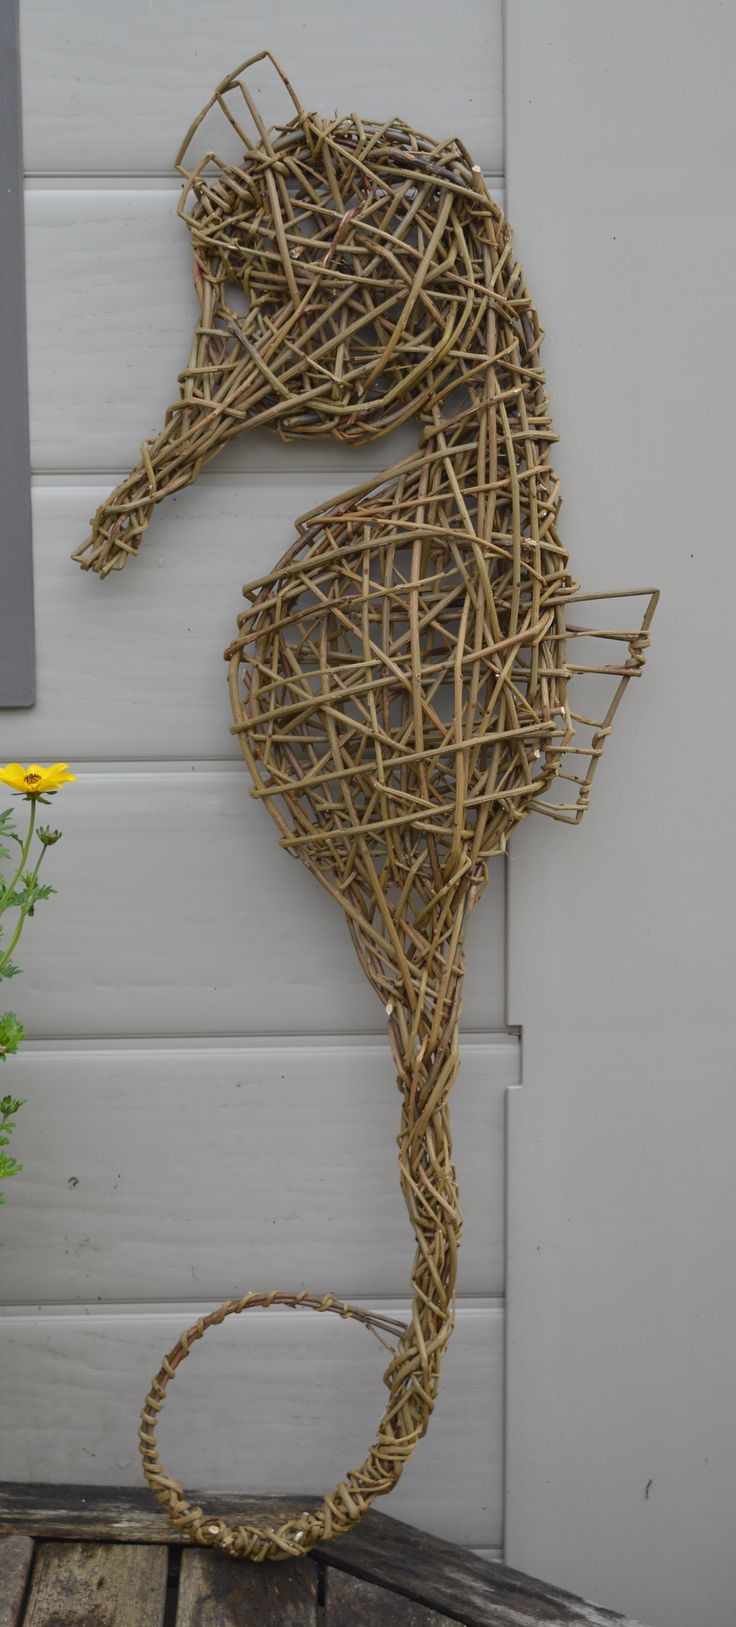 Willow seahorse by Ann Catherall